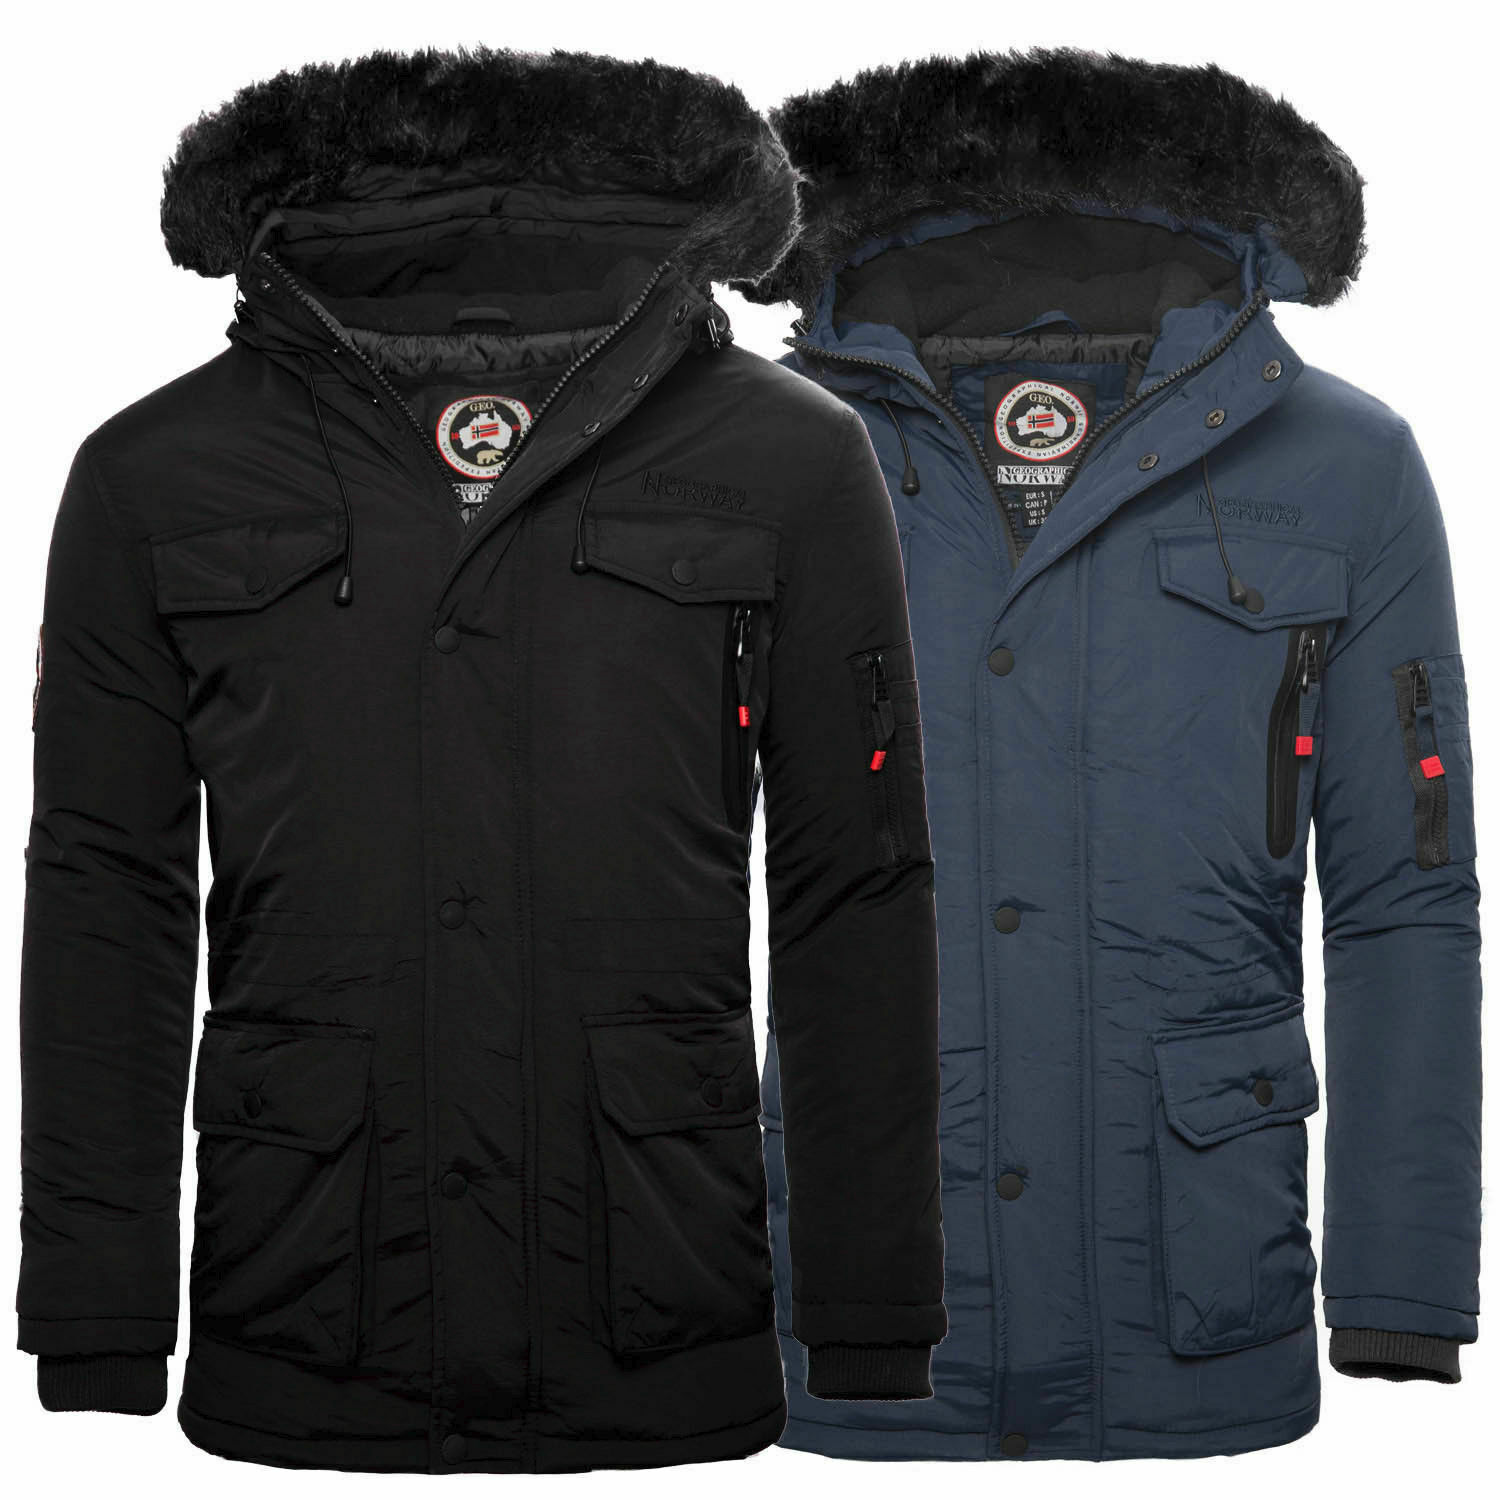 geographical norway alos herren winter jacke parka funktions mantel s xxxl eur 79 90 picclick it. Black Bedroom Furniture Sets. Home Design Ideas